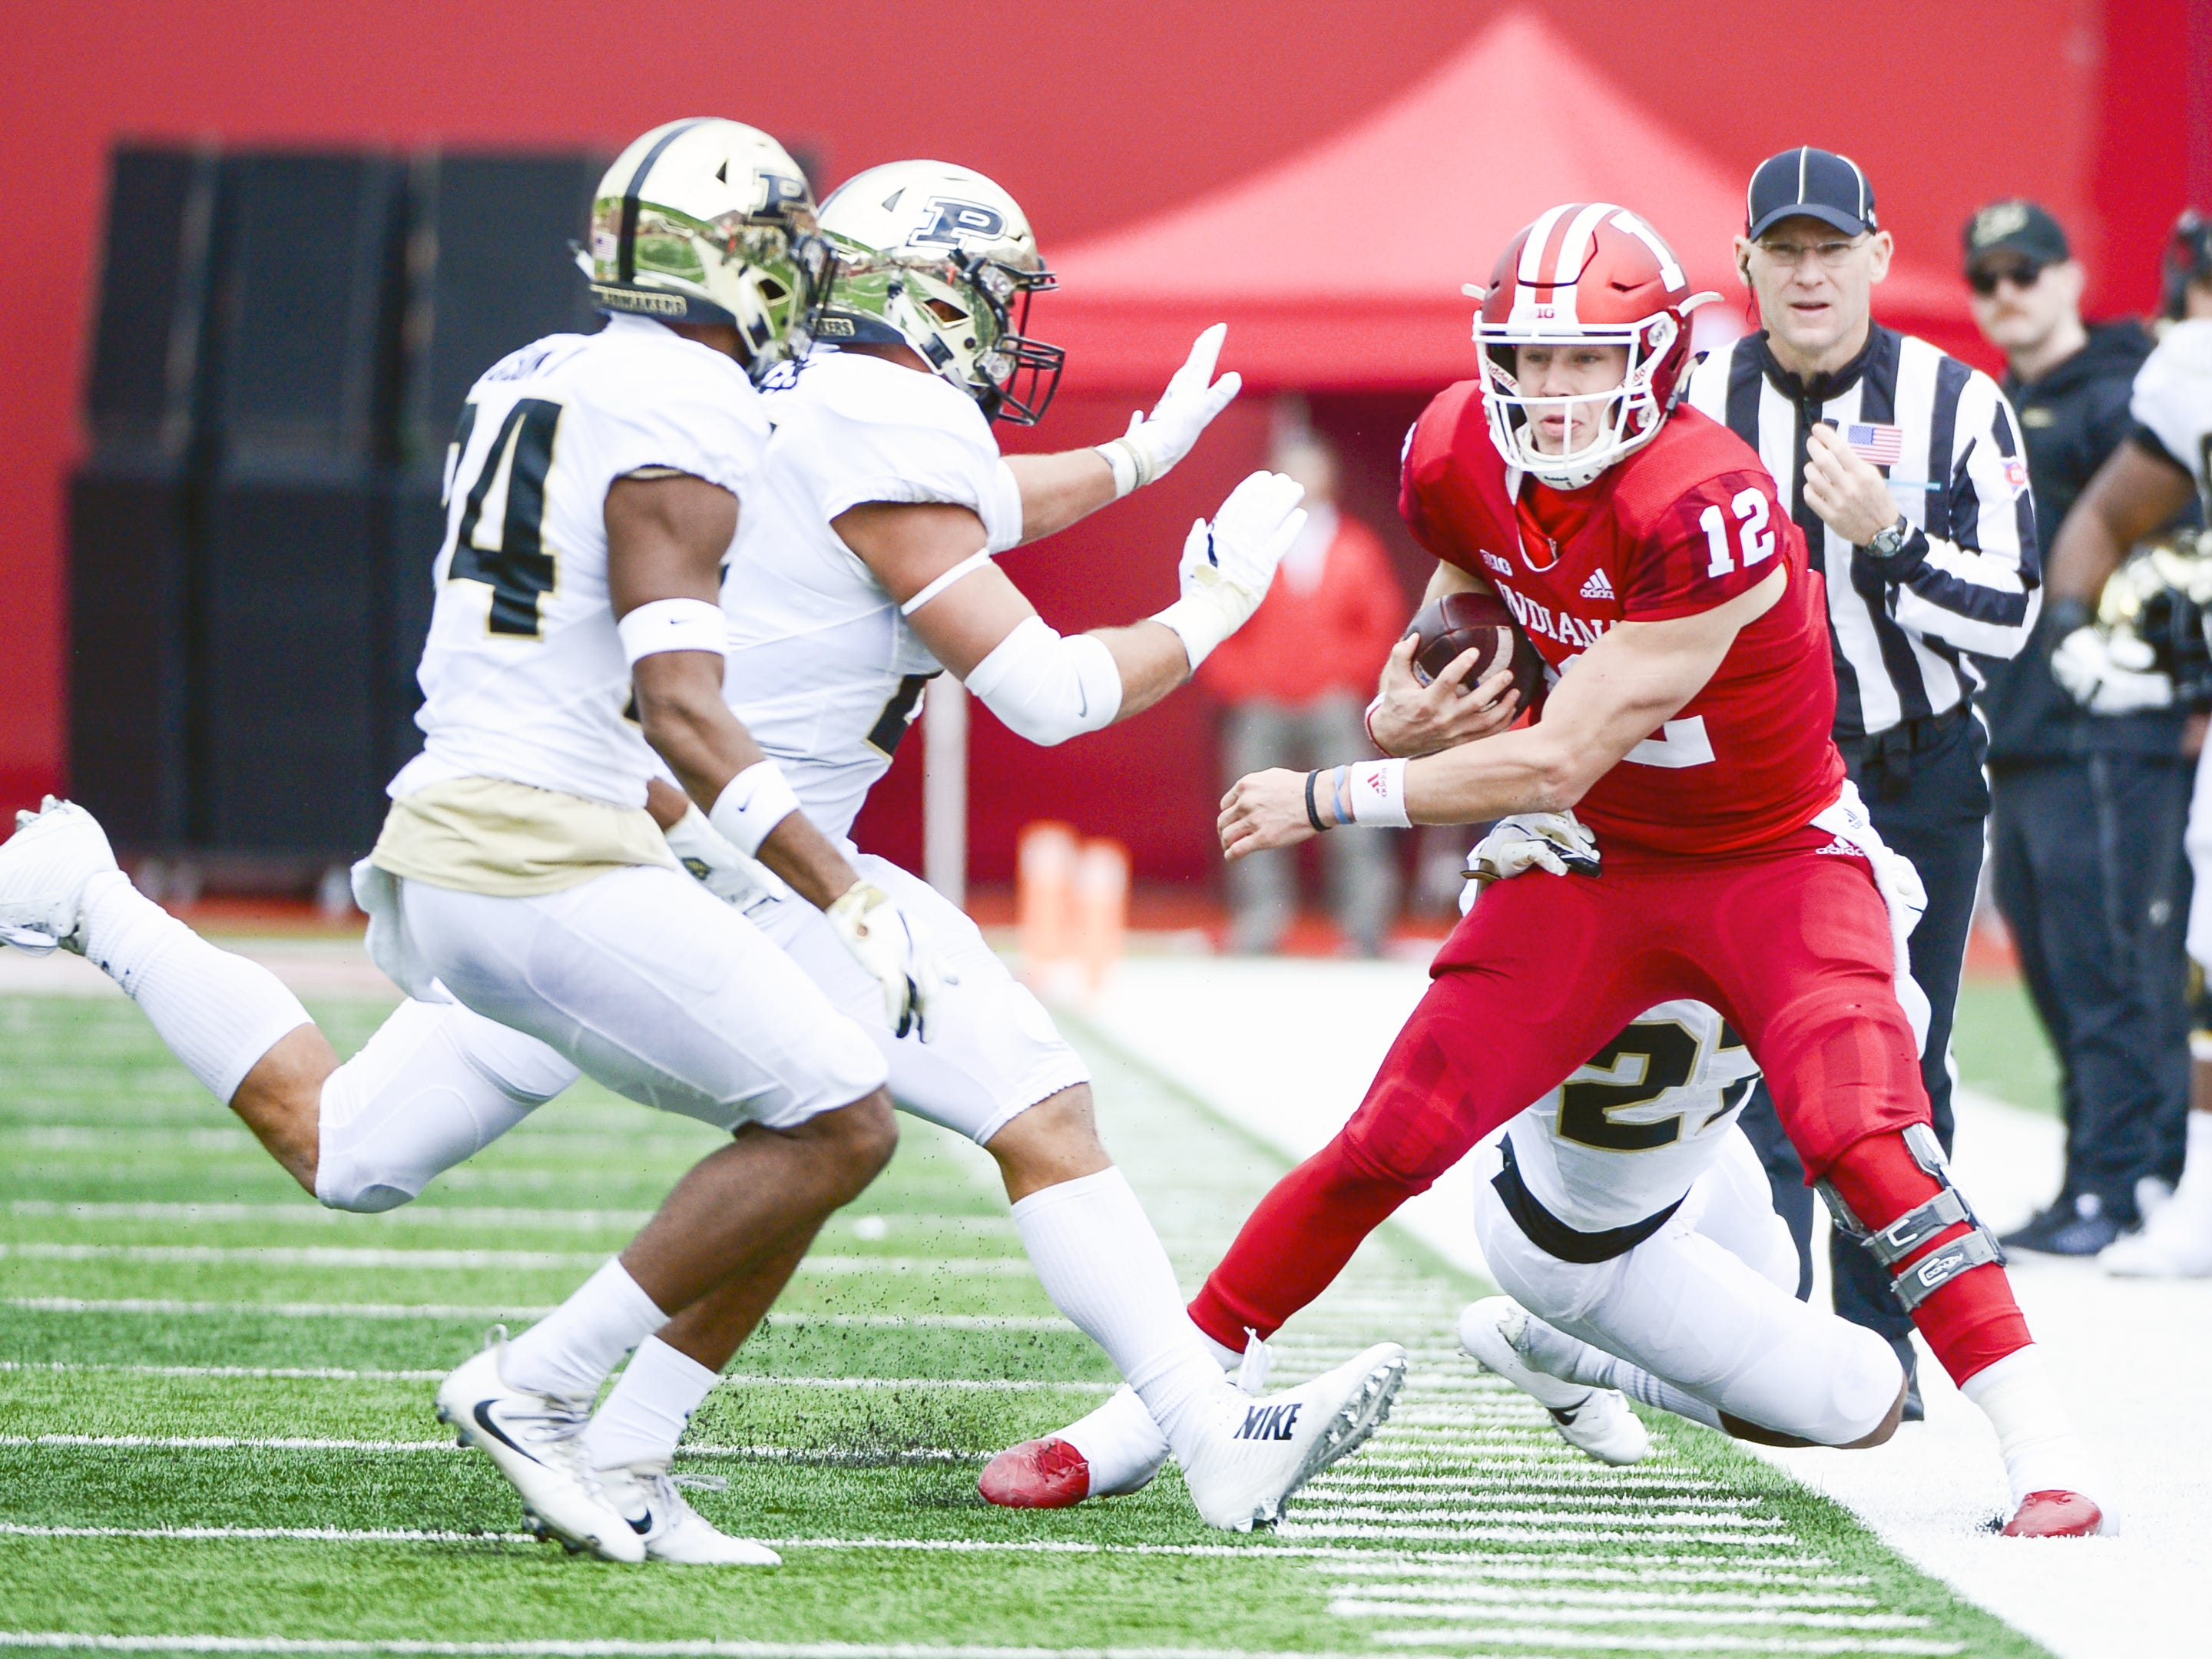 Indiana Hoosiers quarterback Peyton Ramsey (12) is pushed out of bounds during the game against Purdue at Memorial Stadium in Bloomington Ind., on Saturday, Nov. 24, 2018.